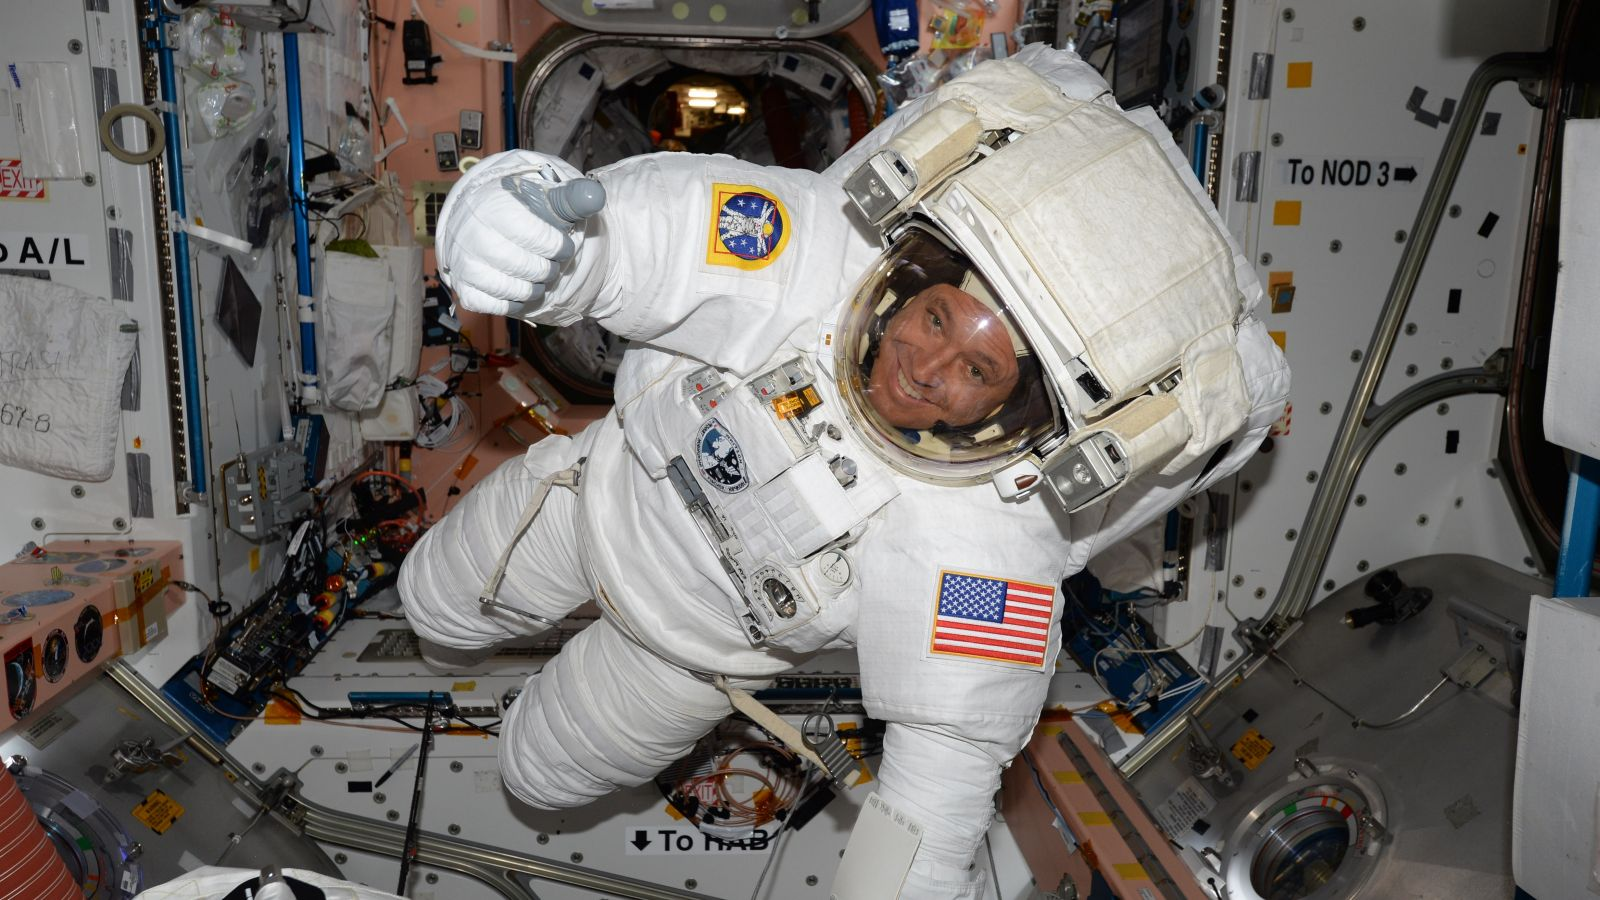 Equipment water leak stalls spacewalk by 2 U.S. astronauts